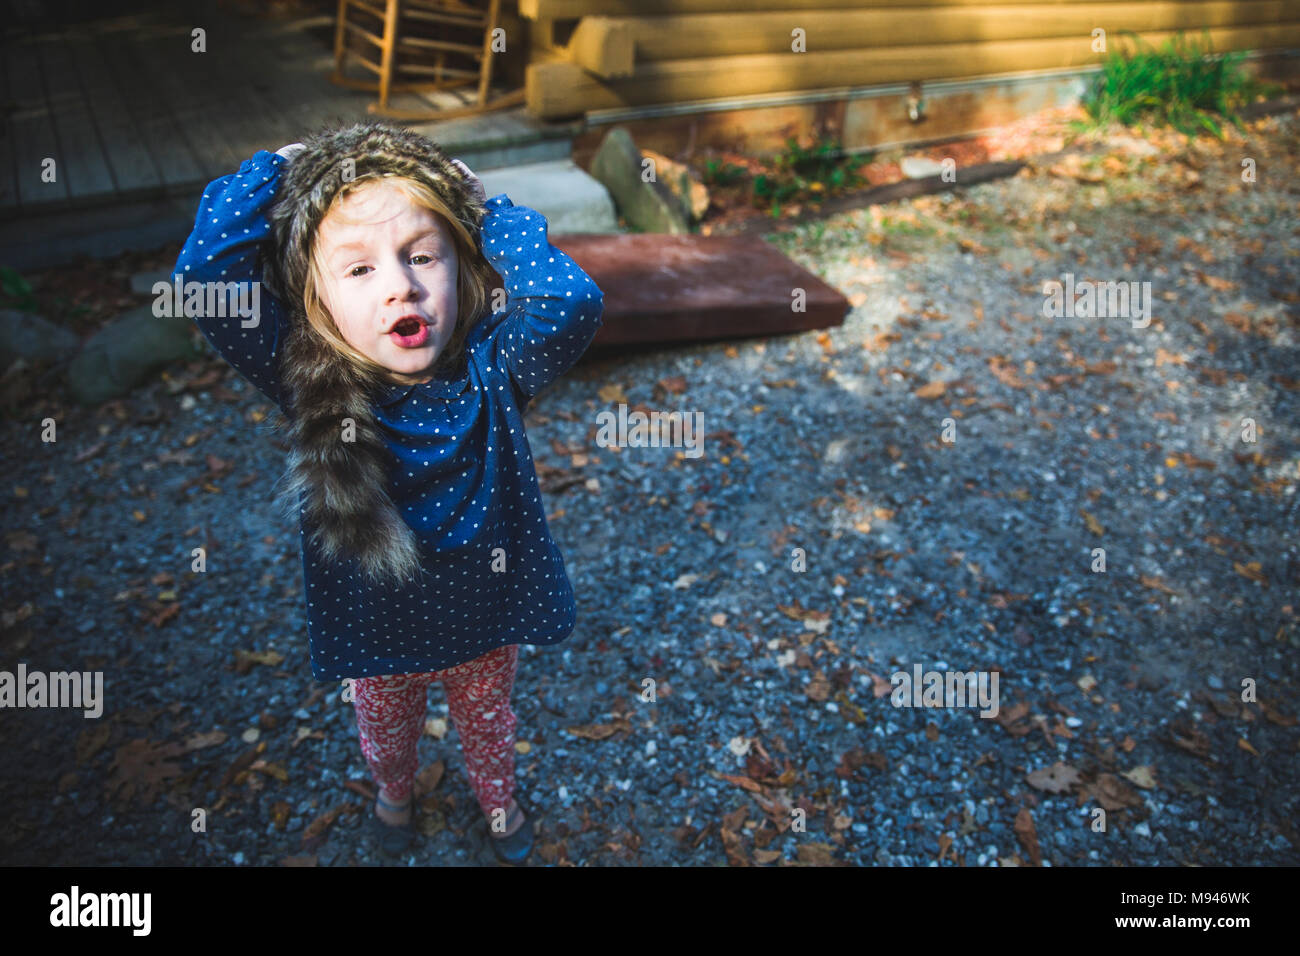 Girl with coonskin cap on - Stock Image